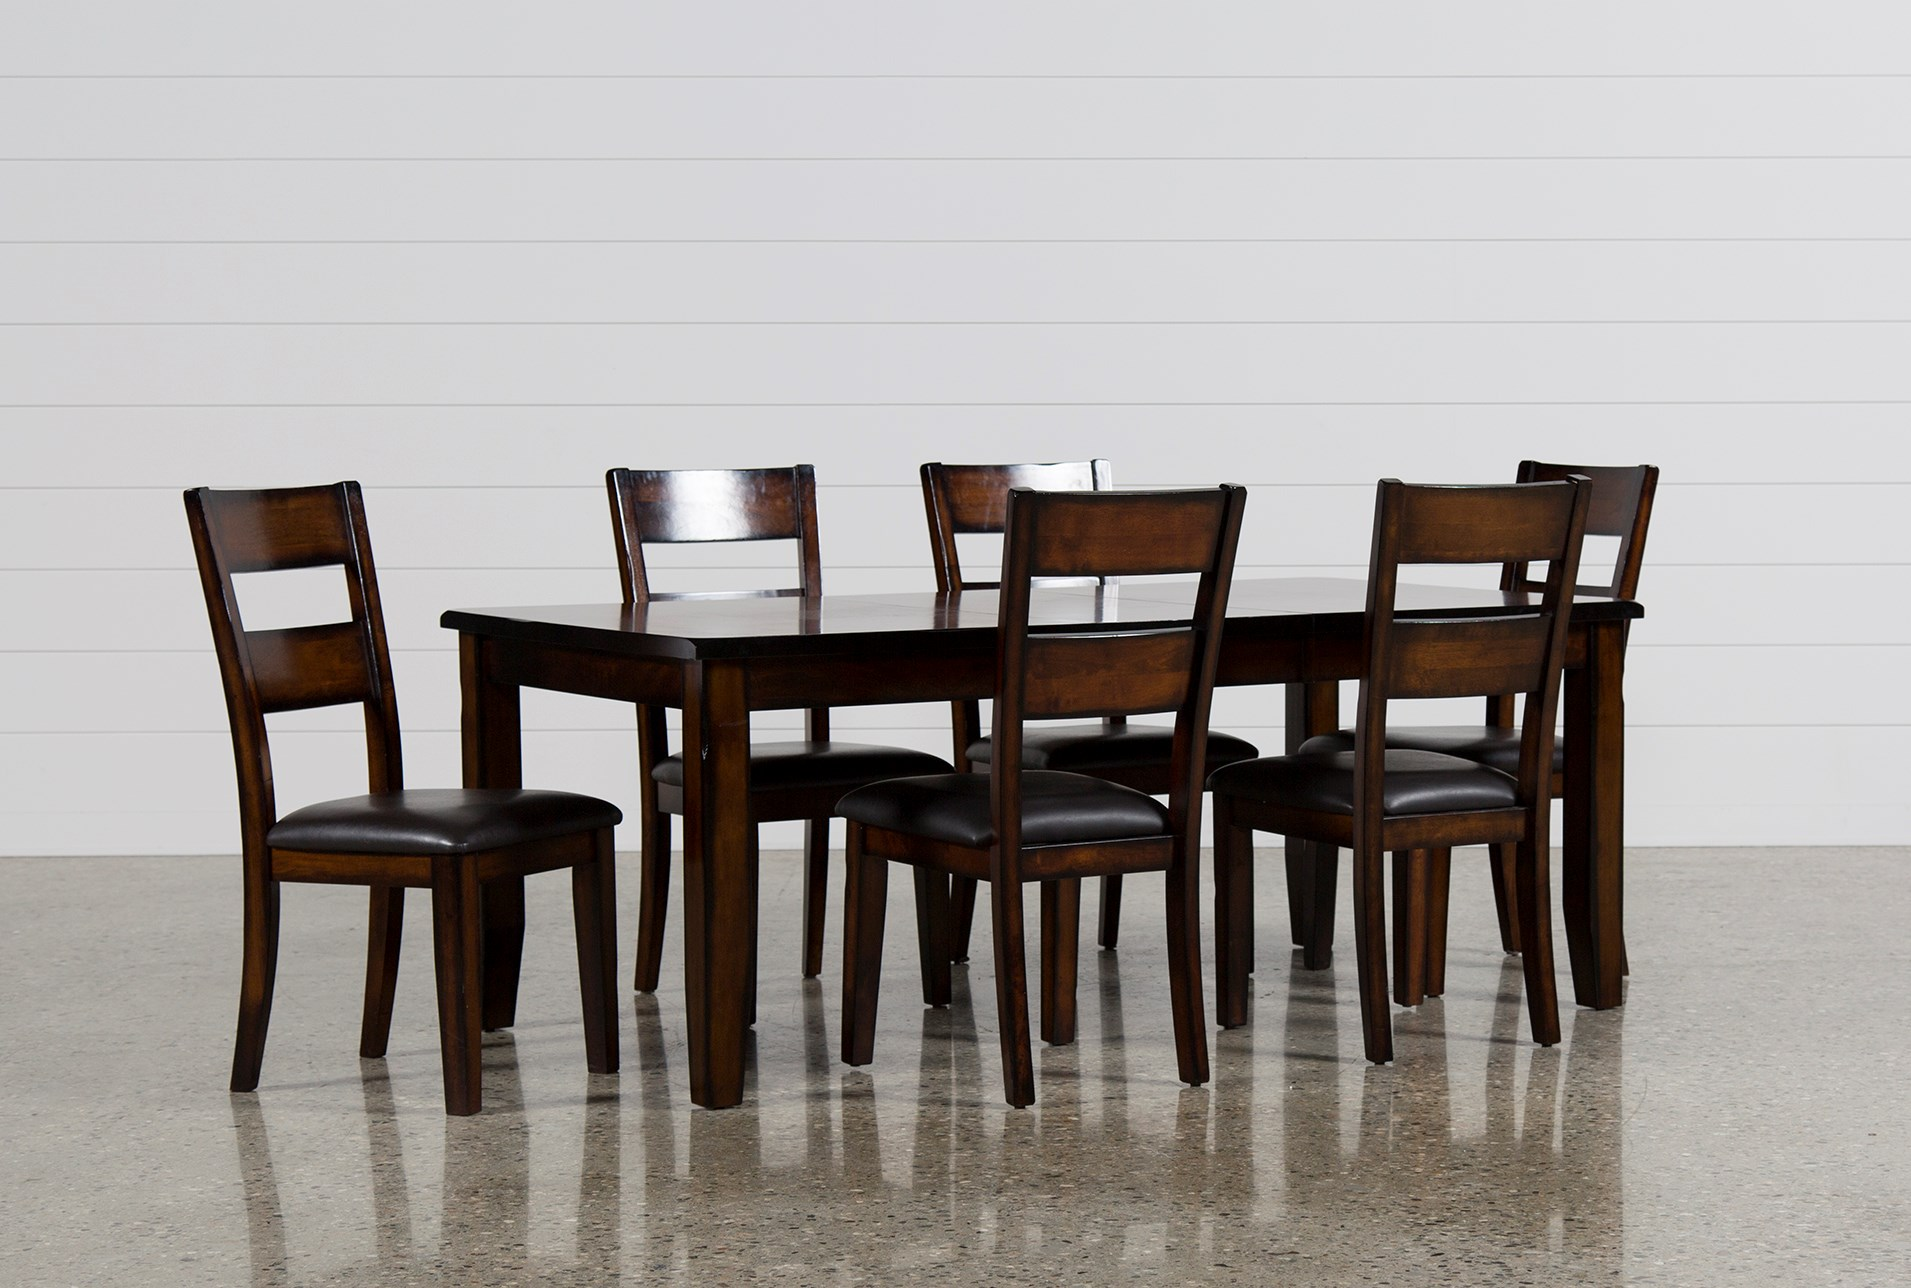 e7cb0062f5df Rocco 7 Piece Extension Dining Set (Qty  1) has been successfully added to  your Cart.